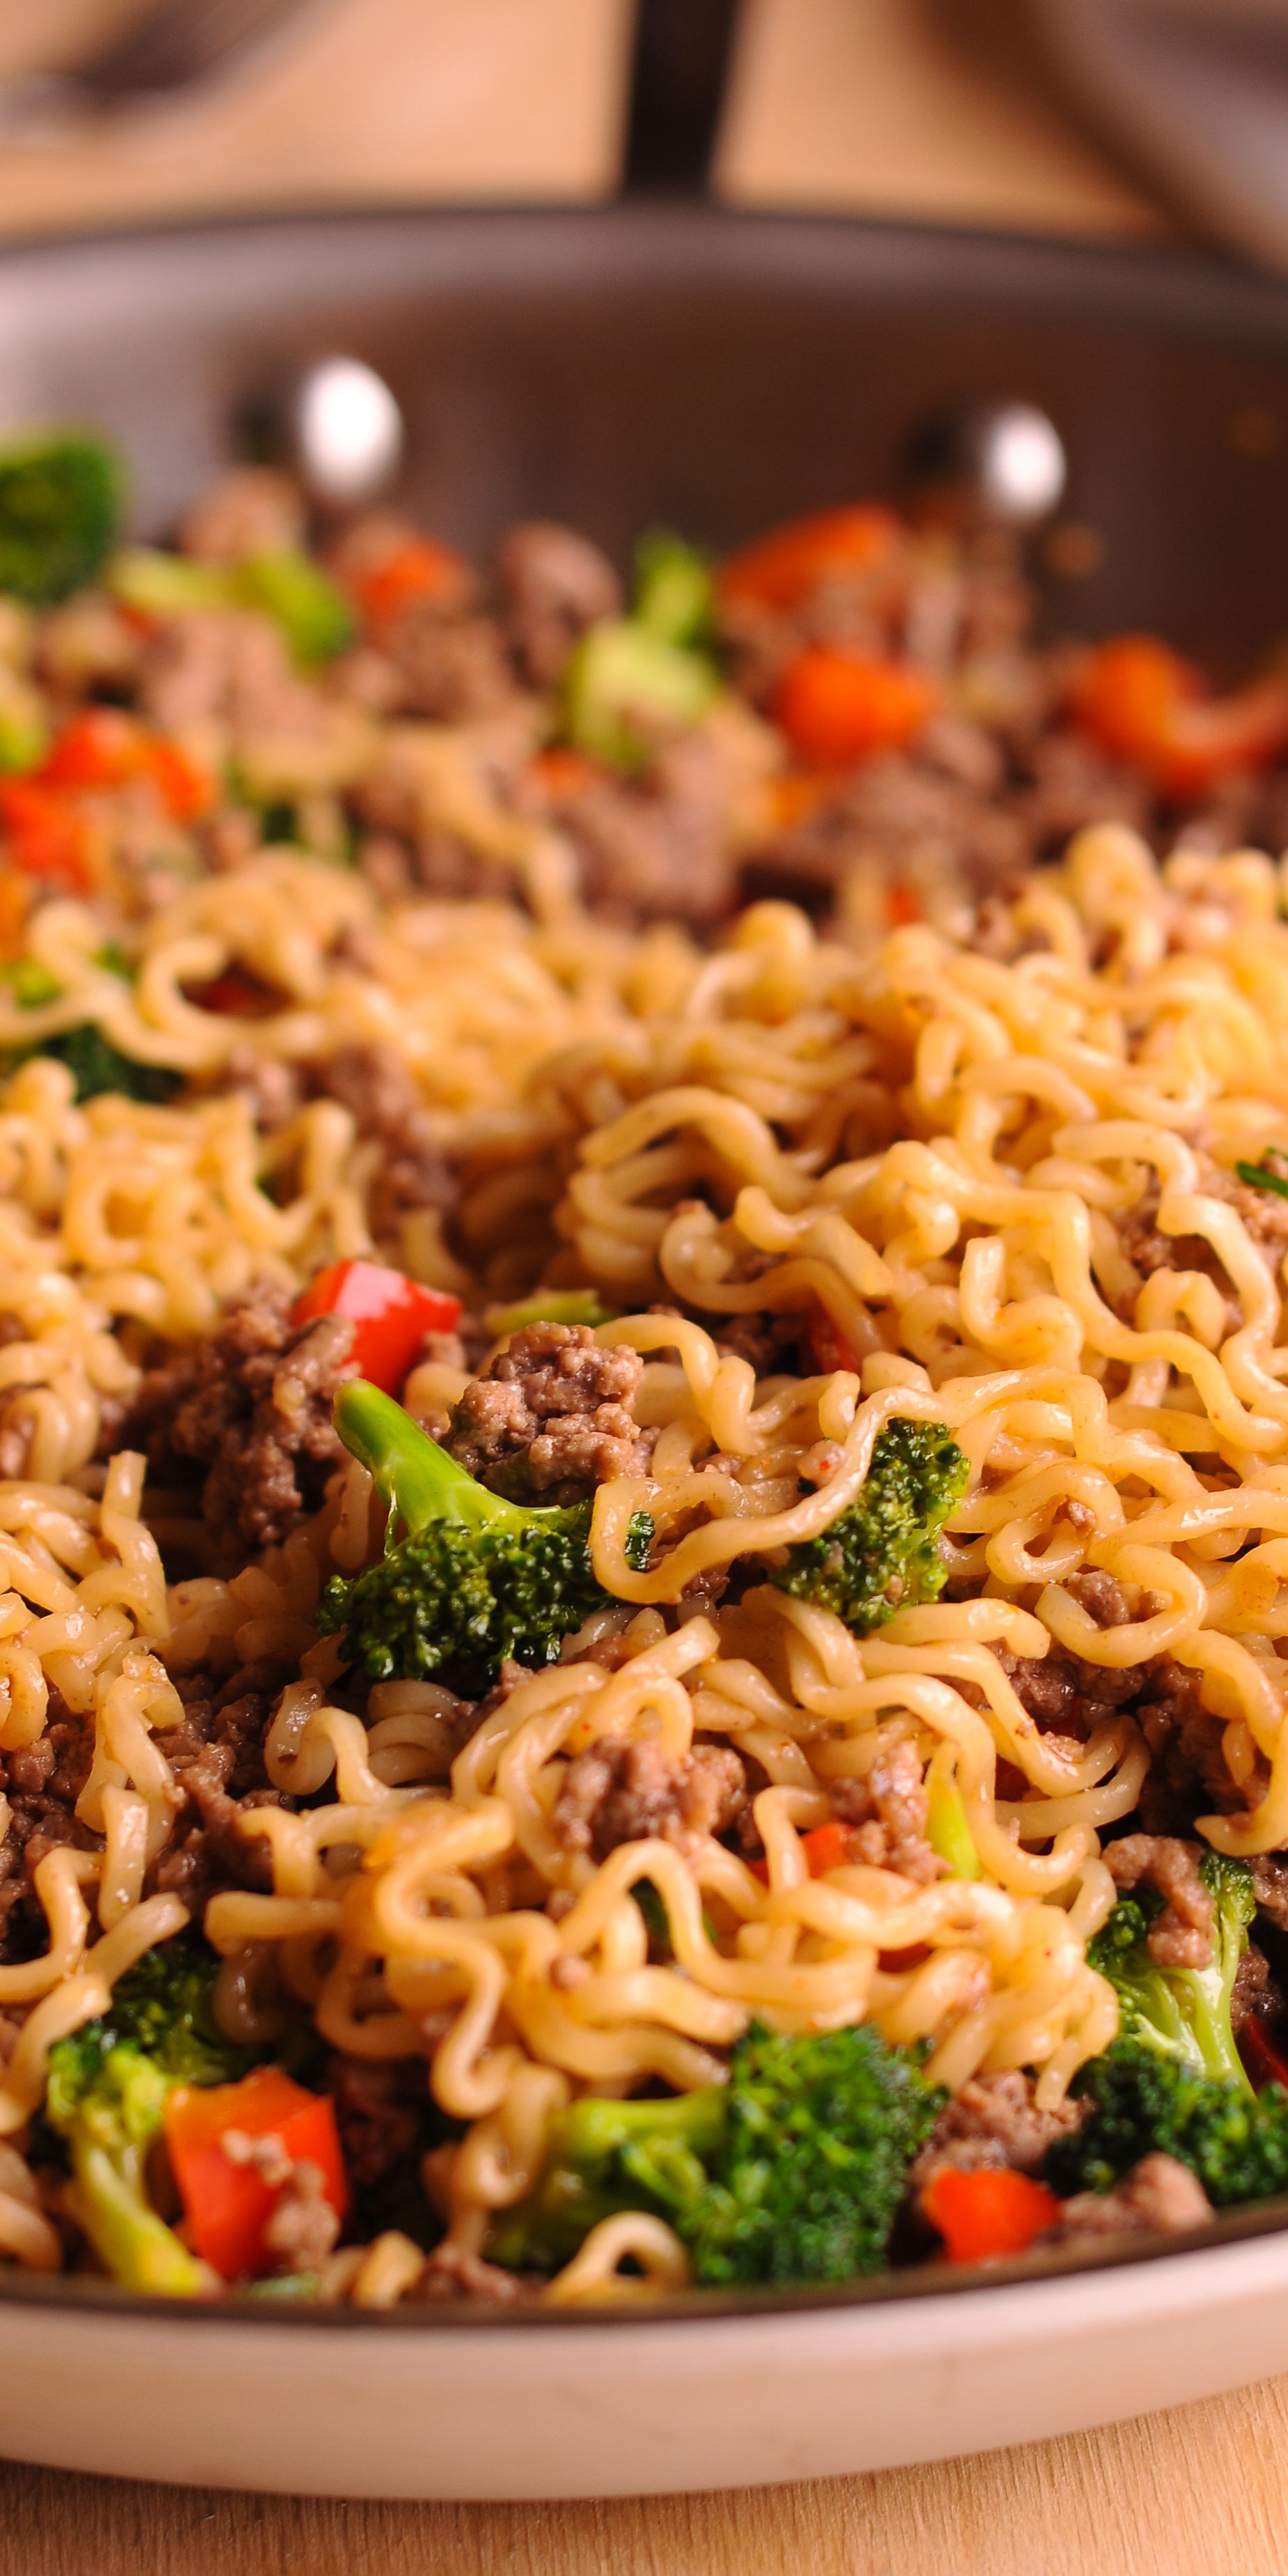 Beef Ramen Noodles Stir Fry Healthy Beef Recipes Healthy Ramen Ground Beef Recipes Easy